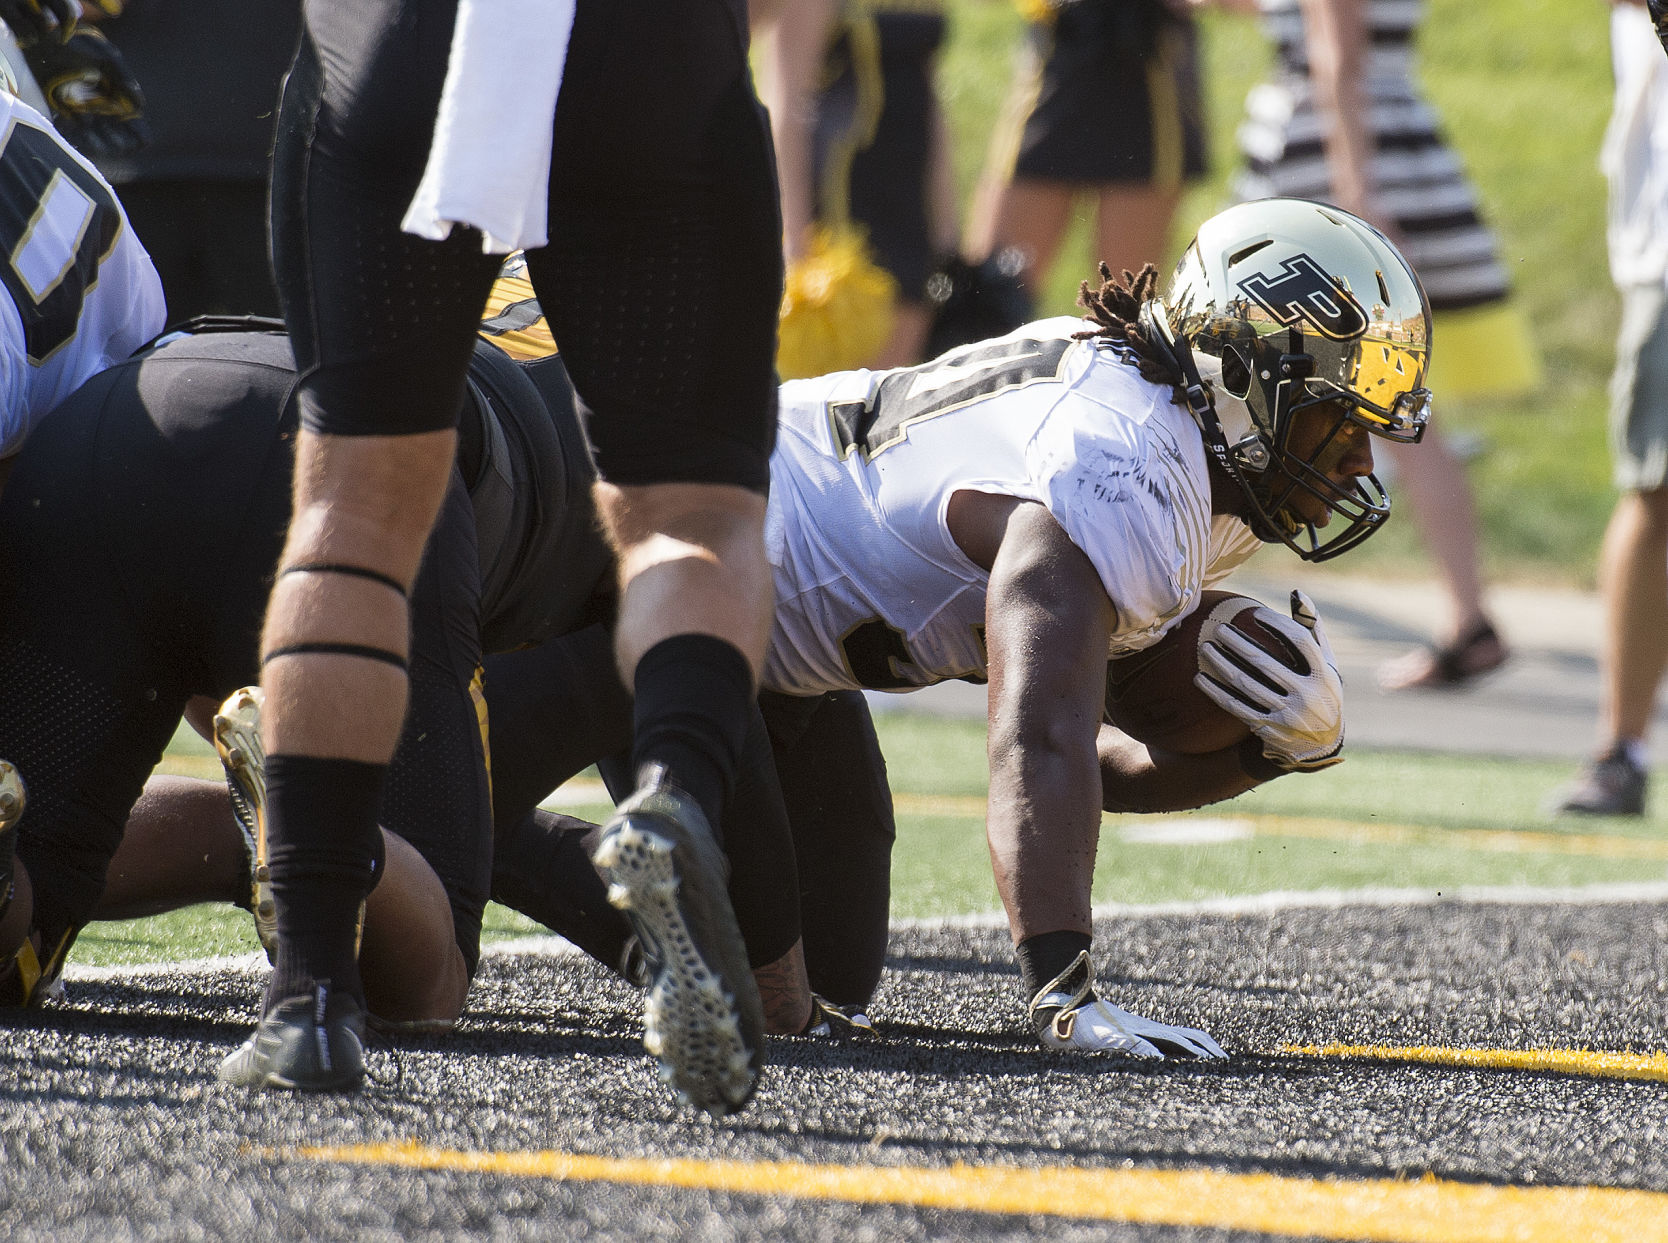 Purdue Wins Big Against Missouri